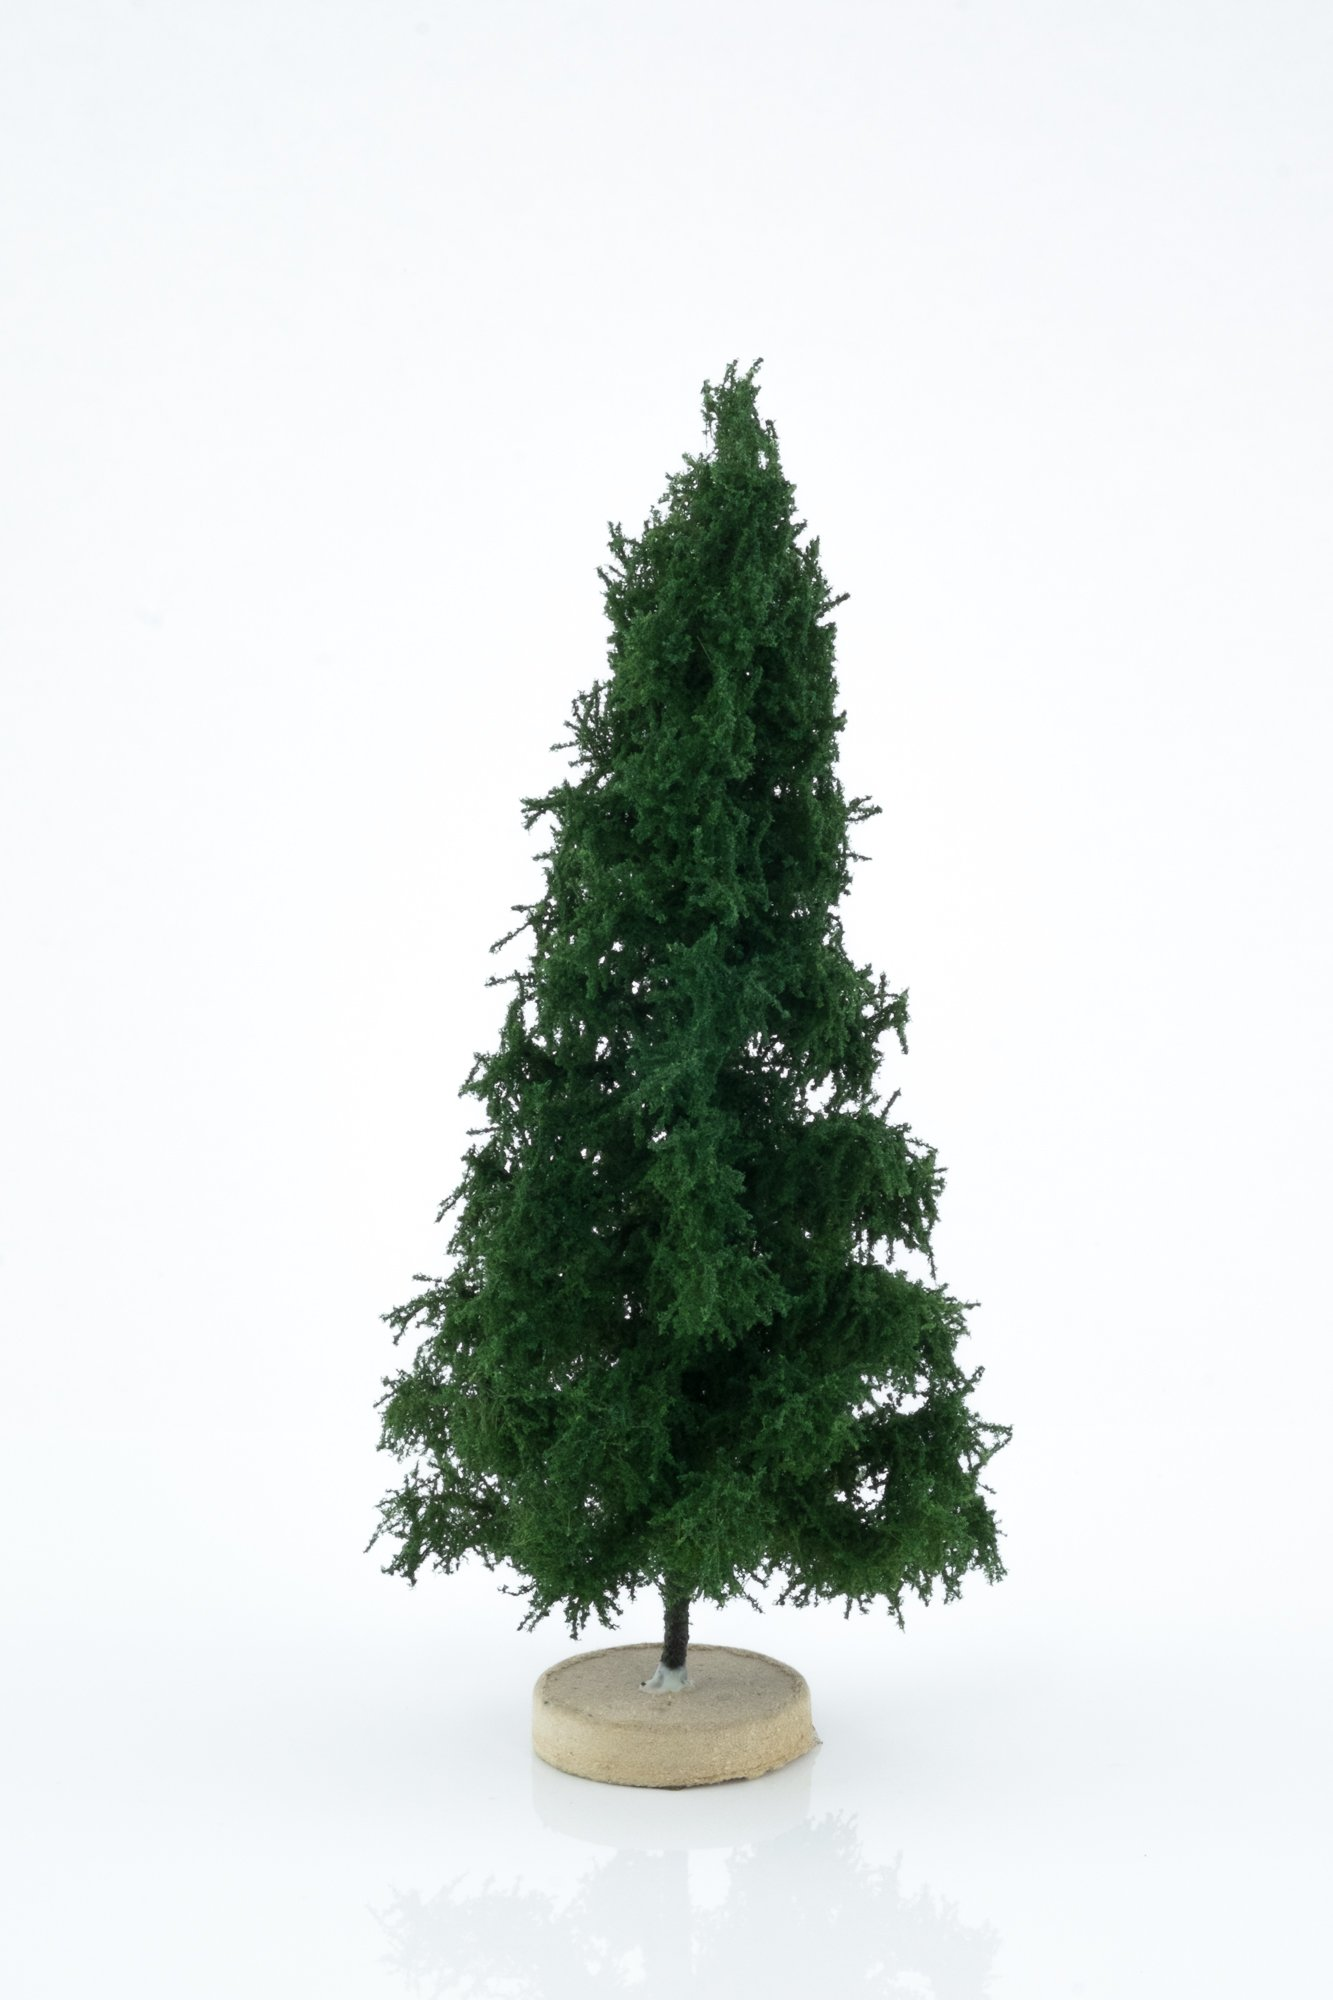 Hand-made, green, spruce tree model. Size between 14 and 16 cm. Made from high quality model supplies by Primo Models.